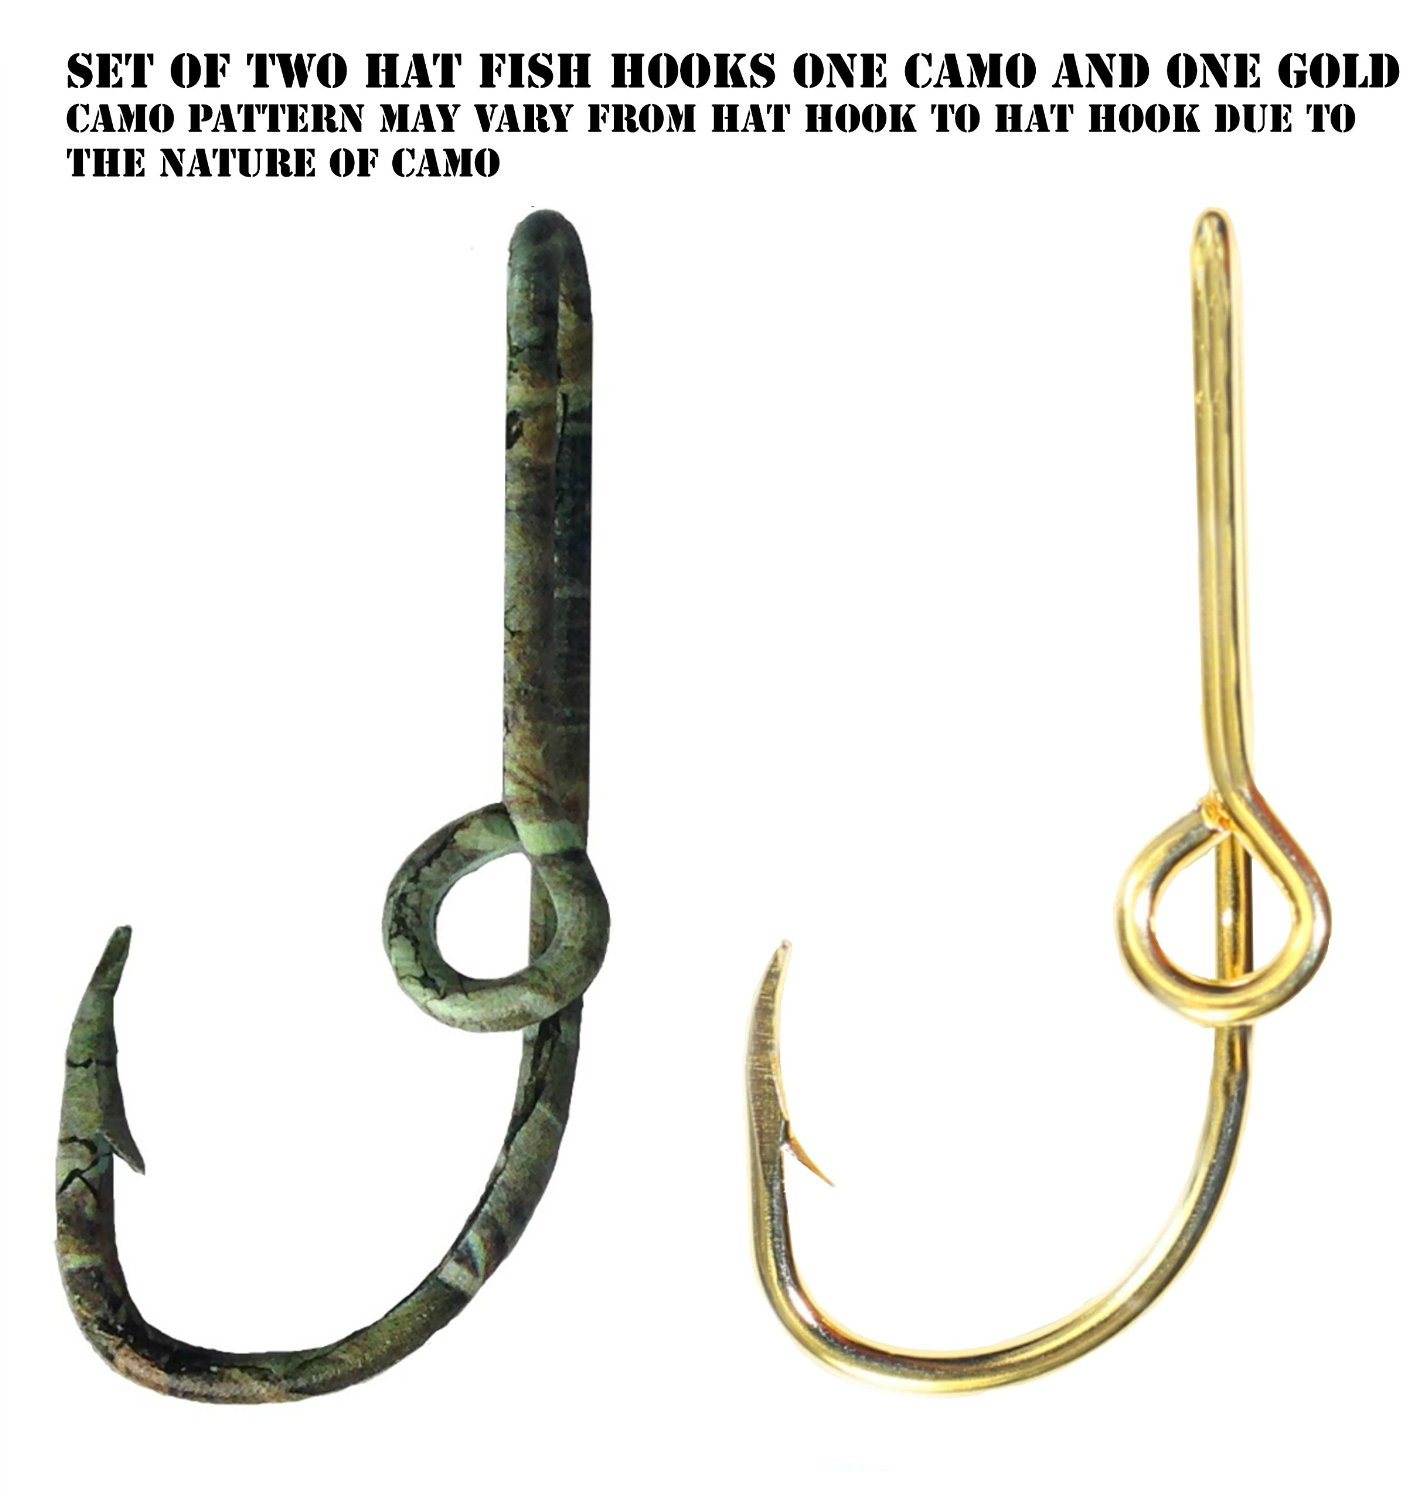 Two Fish Hook Hat Pins Camo and Gold Hat Hook Fish hook for Hat Camo Fish Hook Clip- Set of Two Hooks one Camo and one Gold